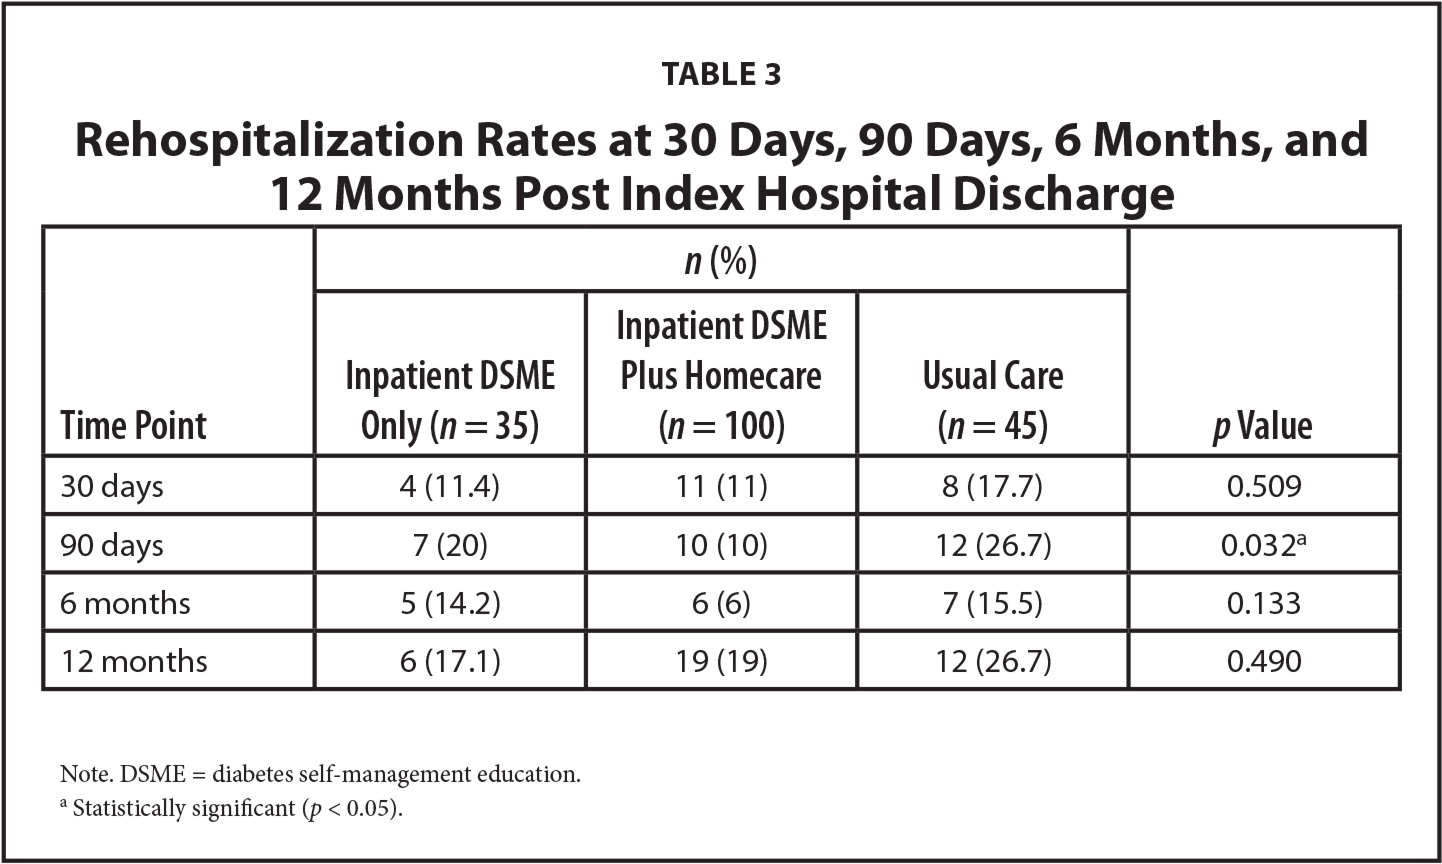 Rehospitalization Rates at 30 Days, 90 Days, 6 Months, and 12 Months Post Index Hospital Discharge